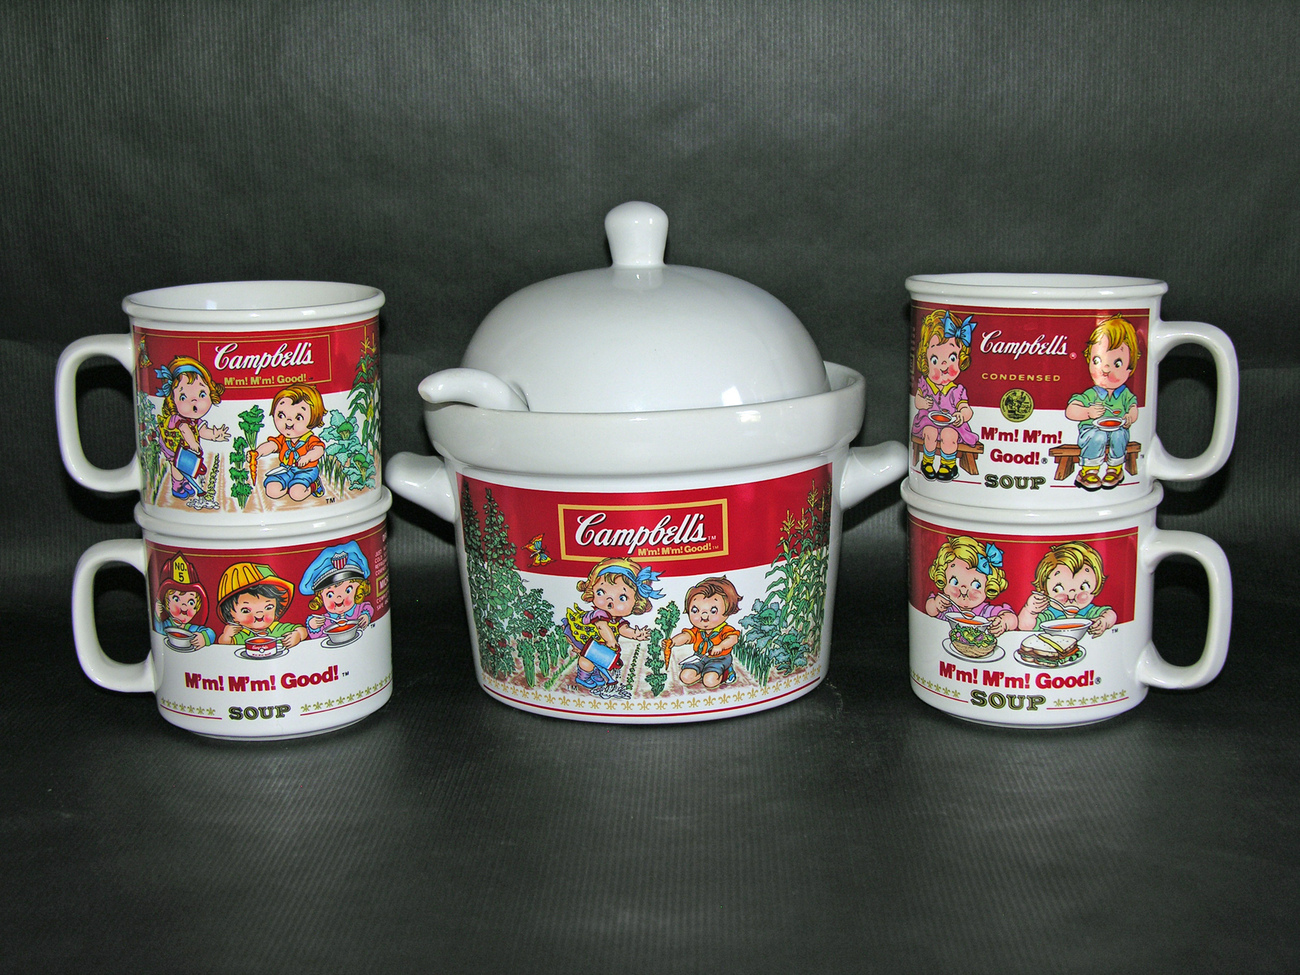 1993 Campbell's Soup Westwood 1.5 Quart Tureen with Ladle and 4 Mugs